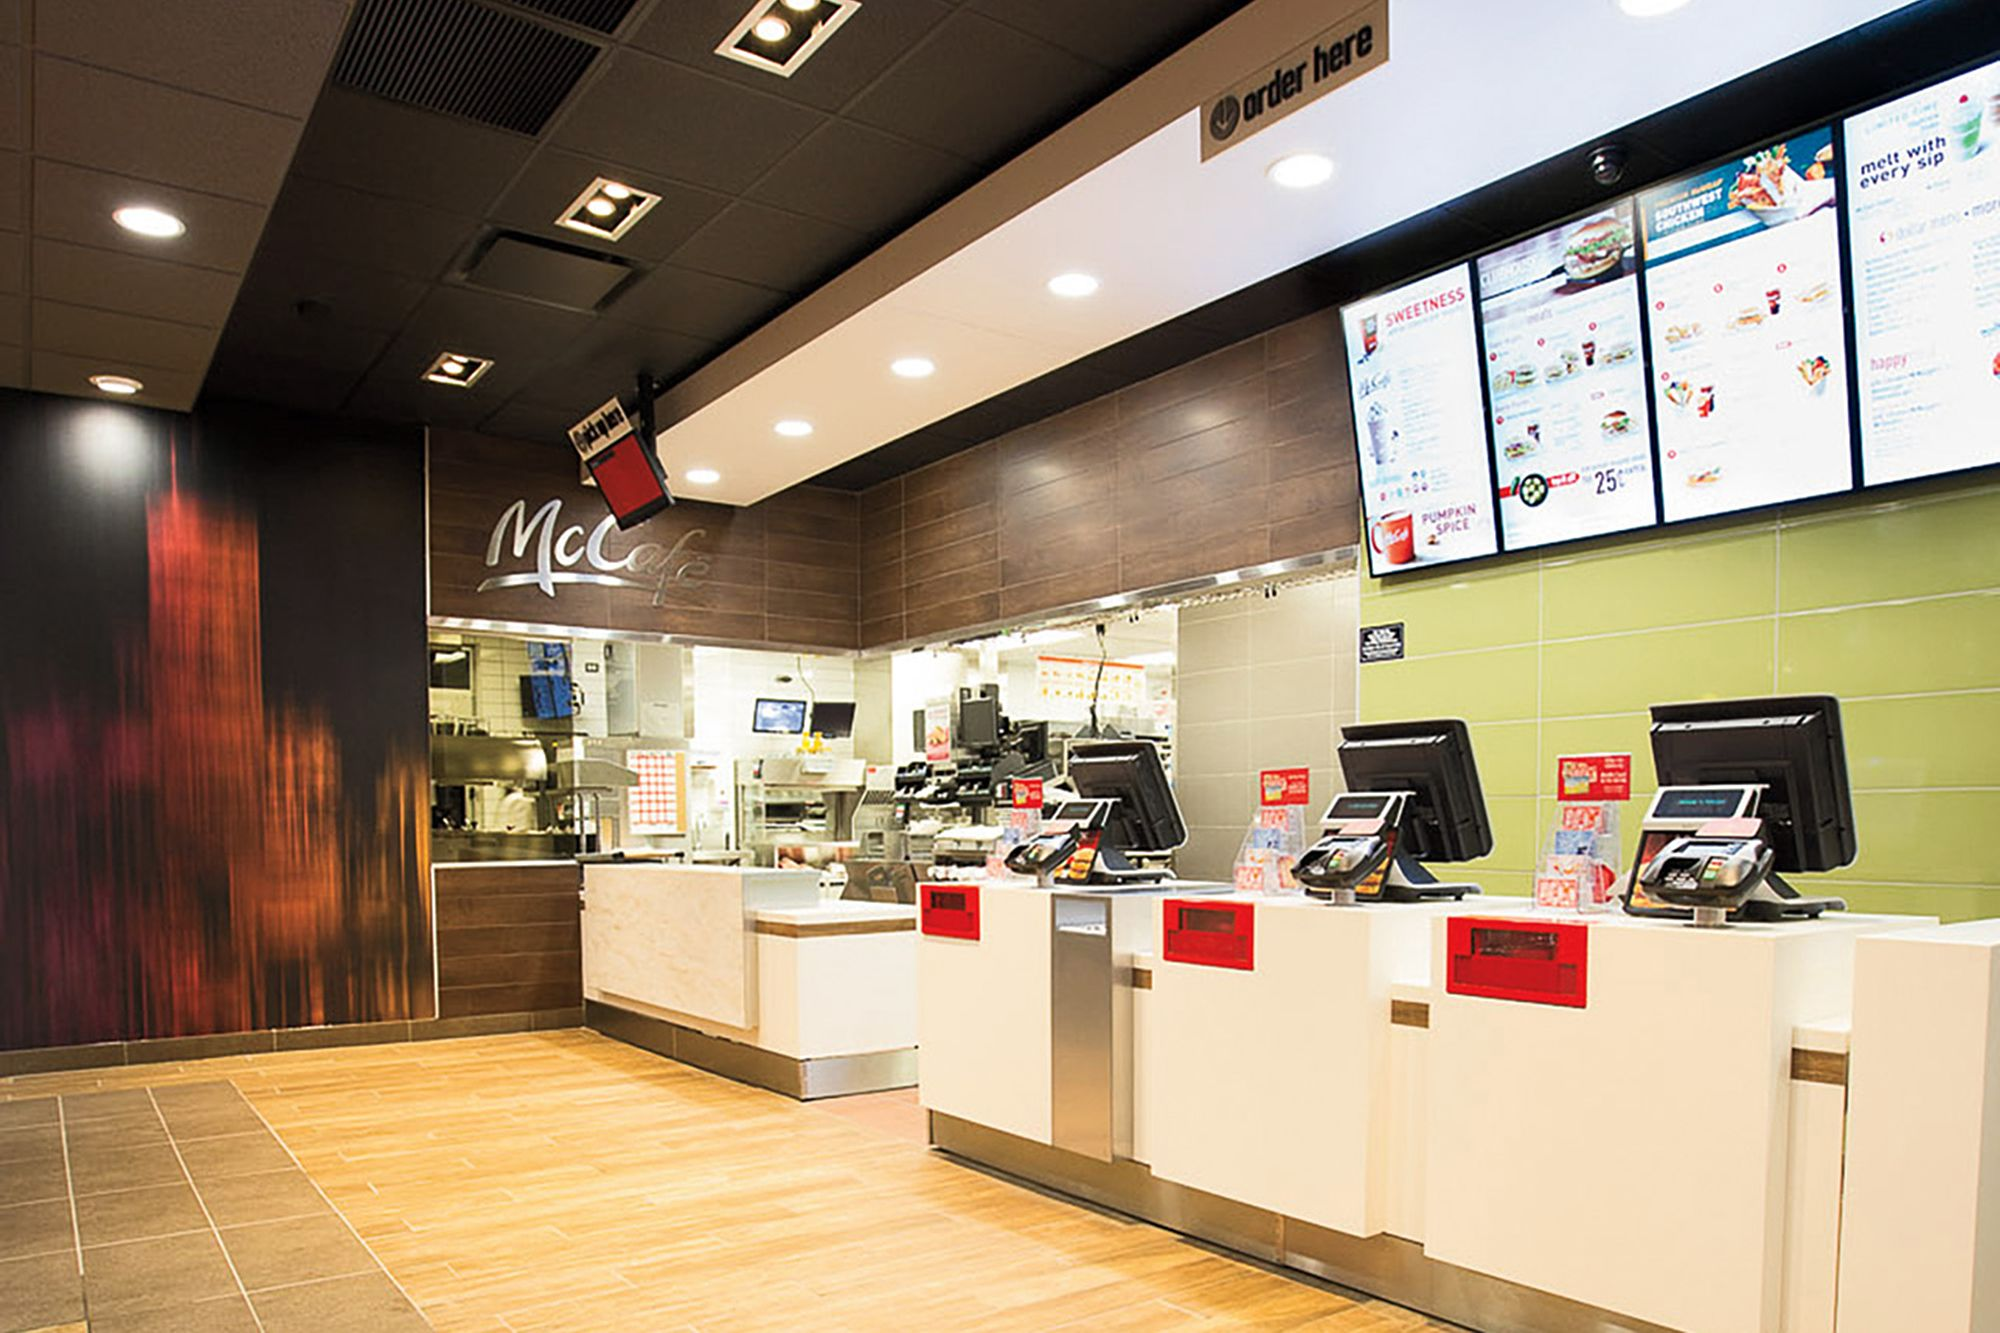 #3 on the Franchise 500: McDonald's Had a Bumpy Year, But Still Leads in Innovation